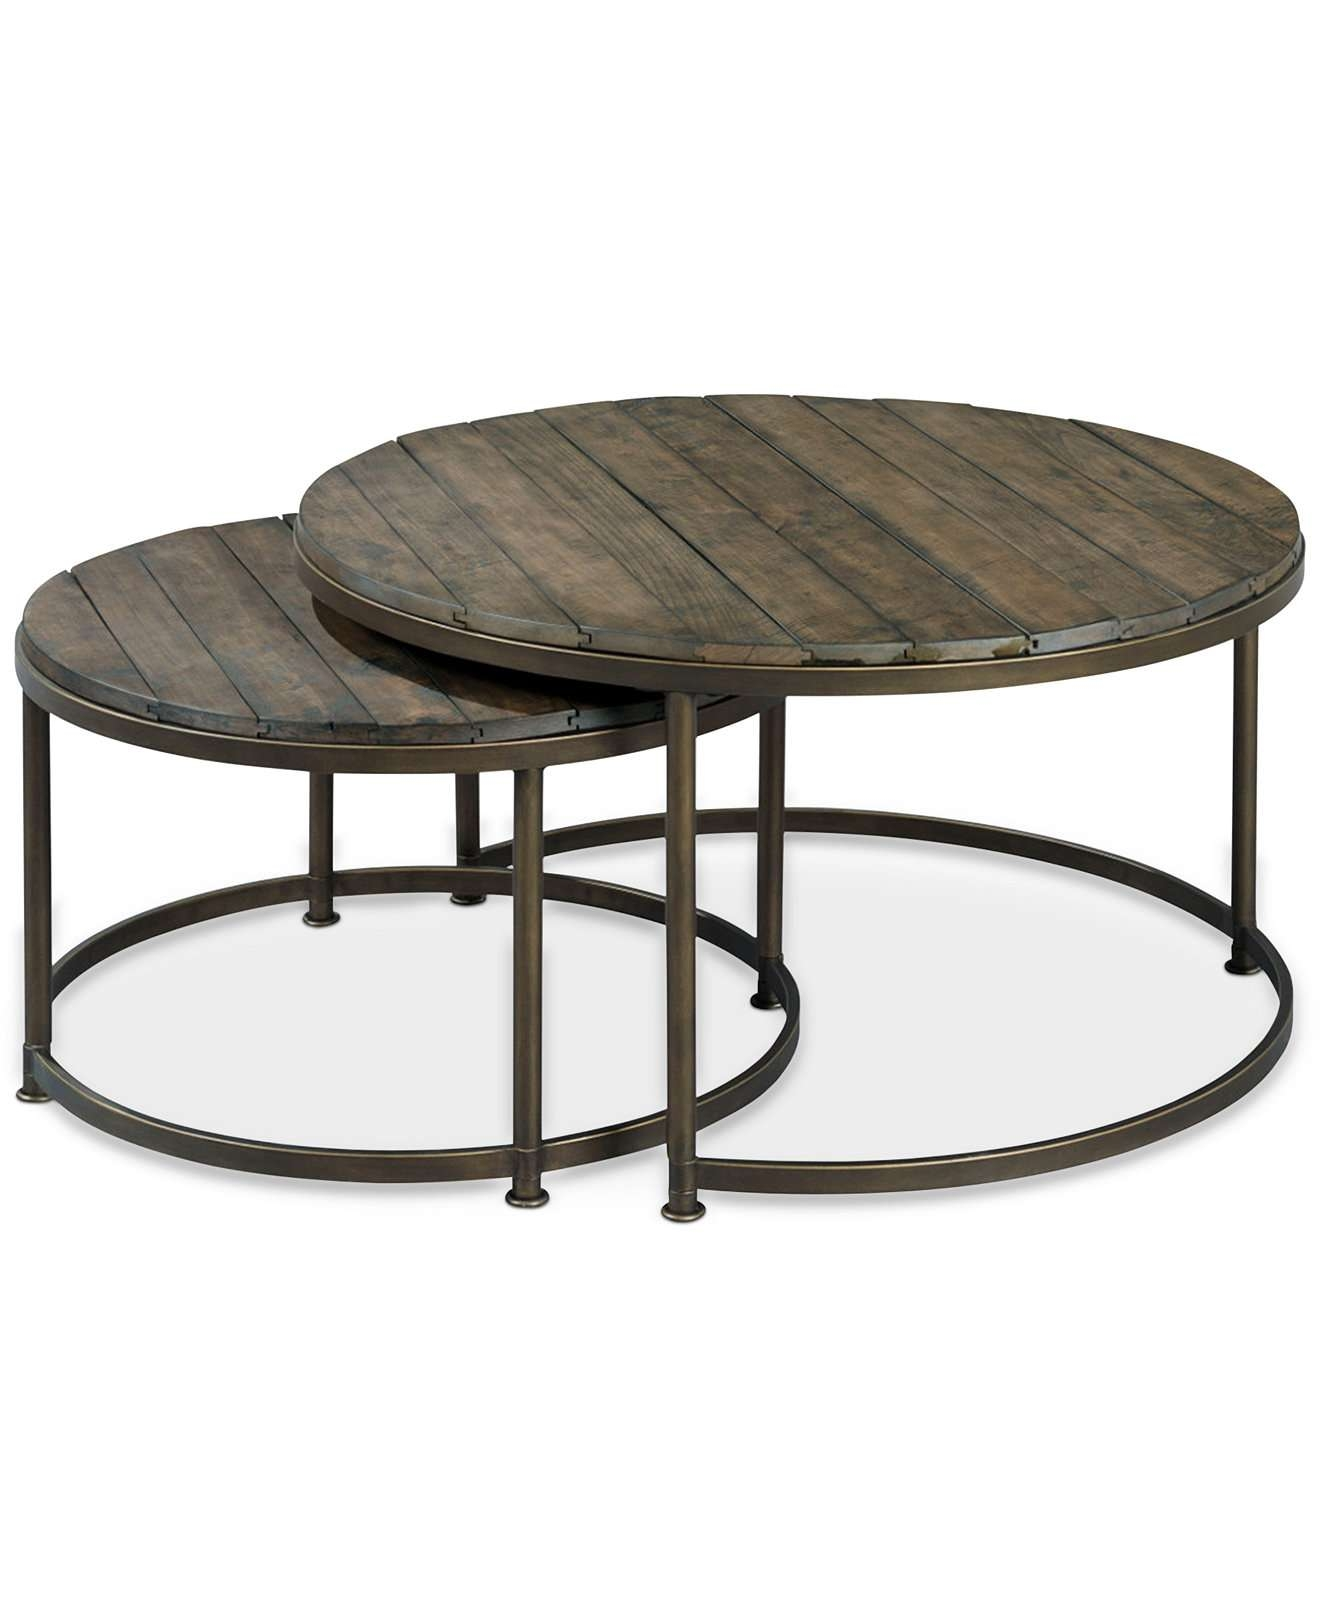 Widely Used Large Round Low Coffee Tables In Coffee Table : Amazing Teak Coffee  Table Low